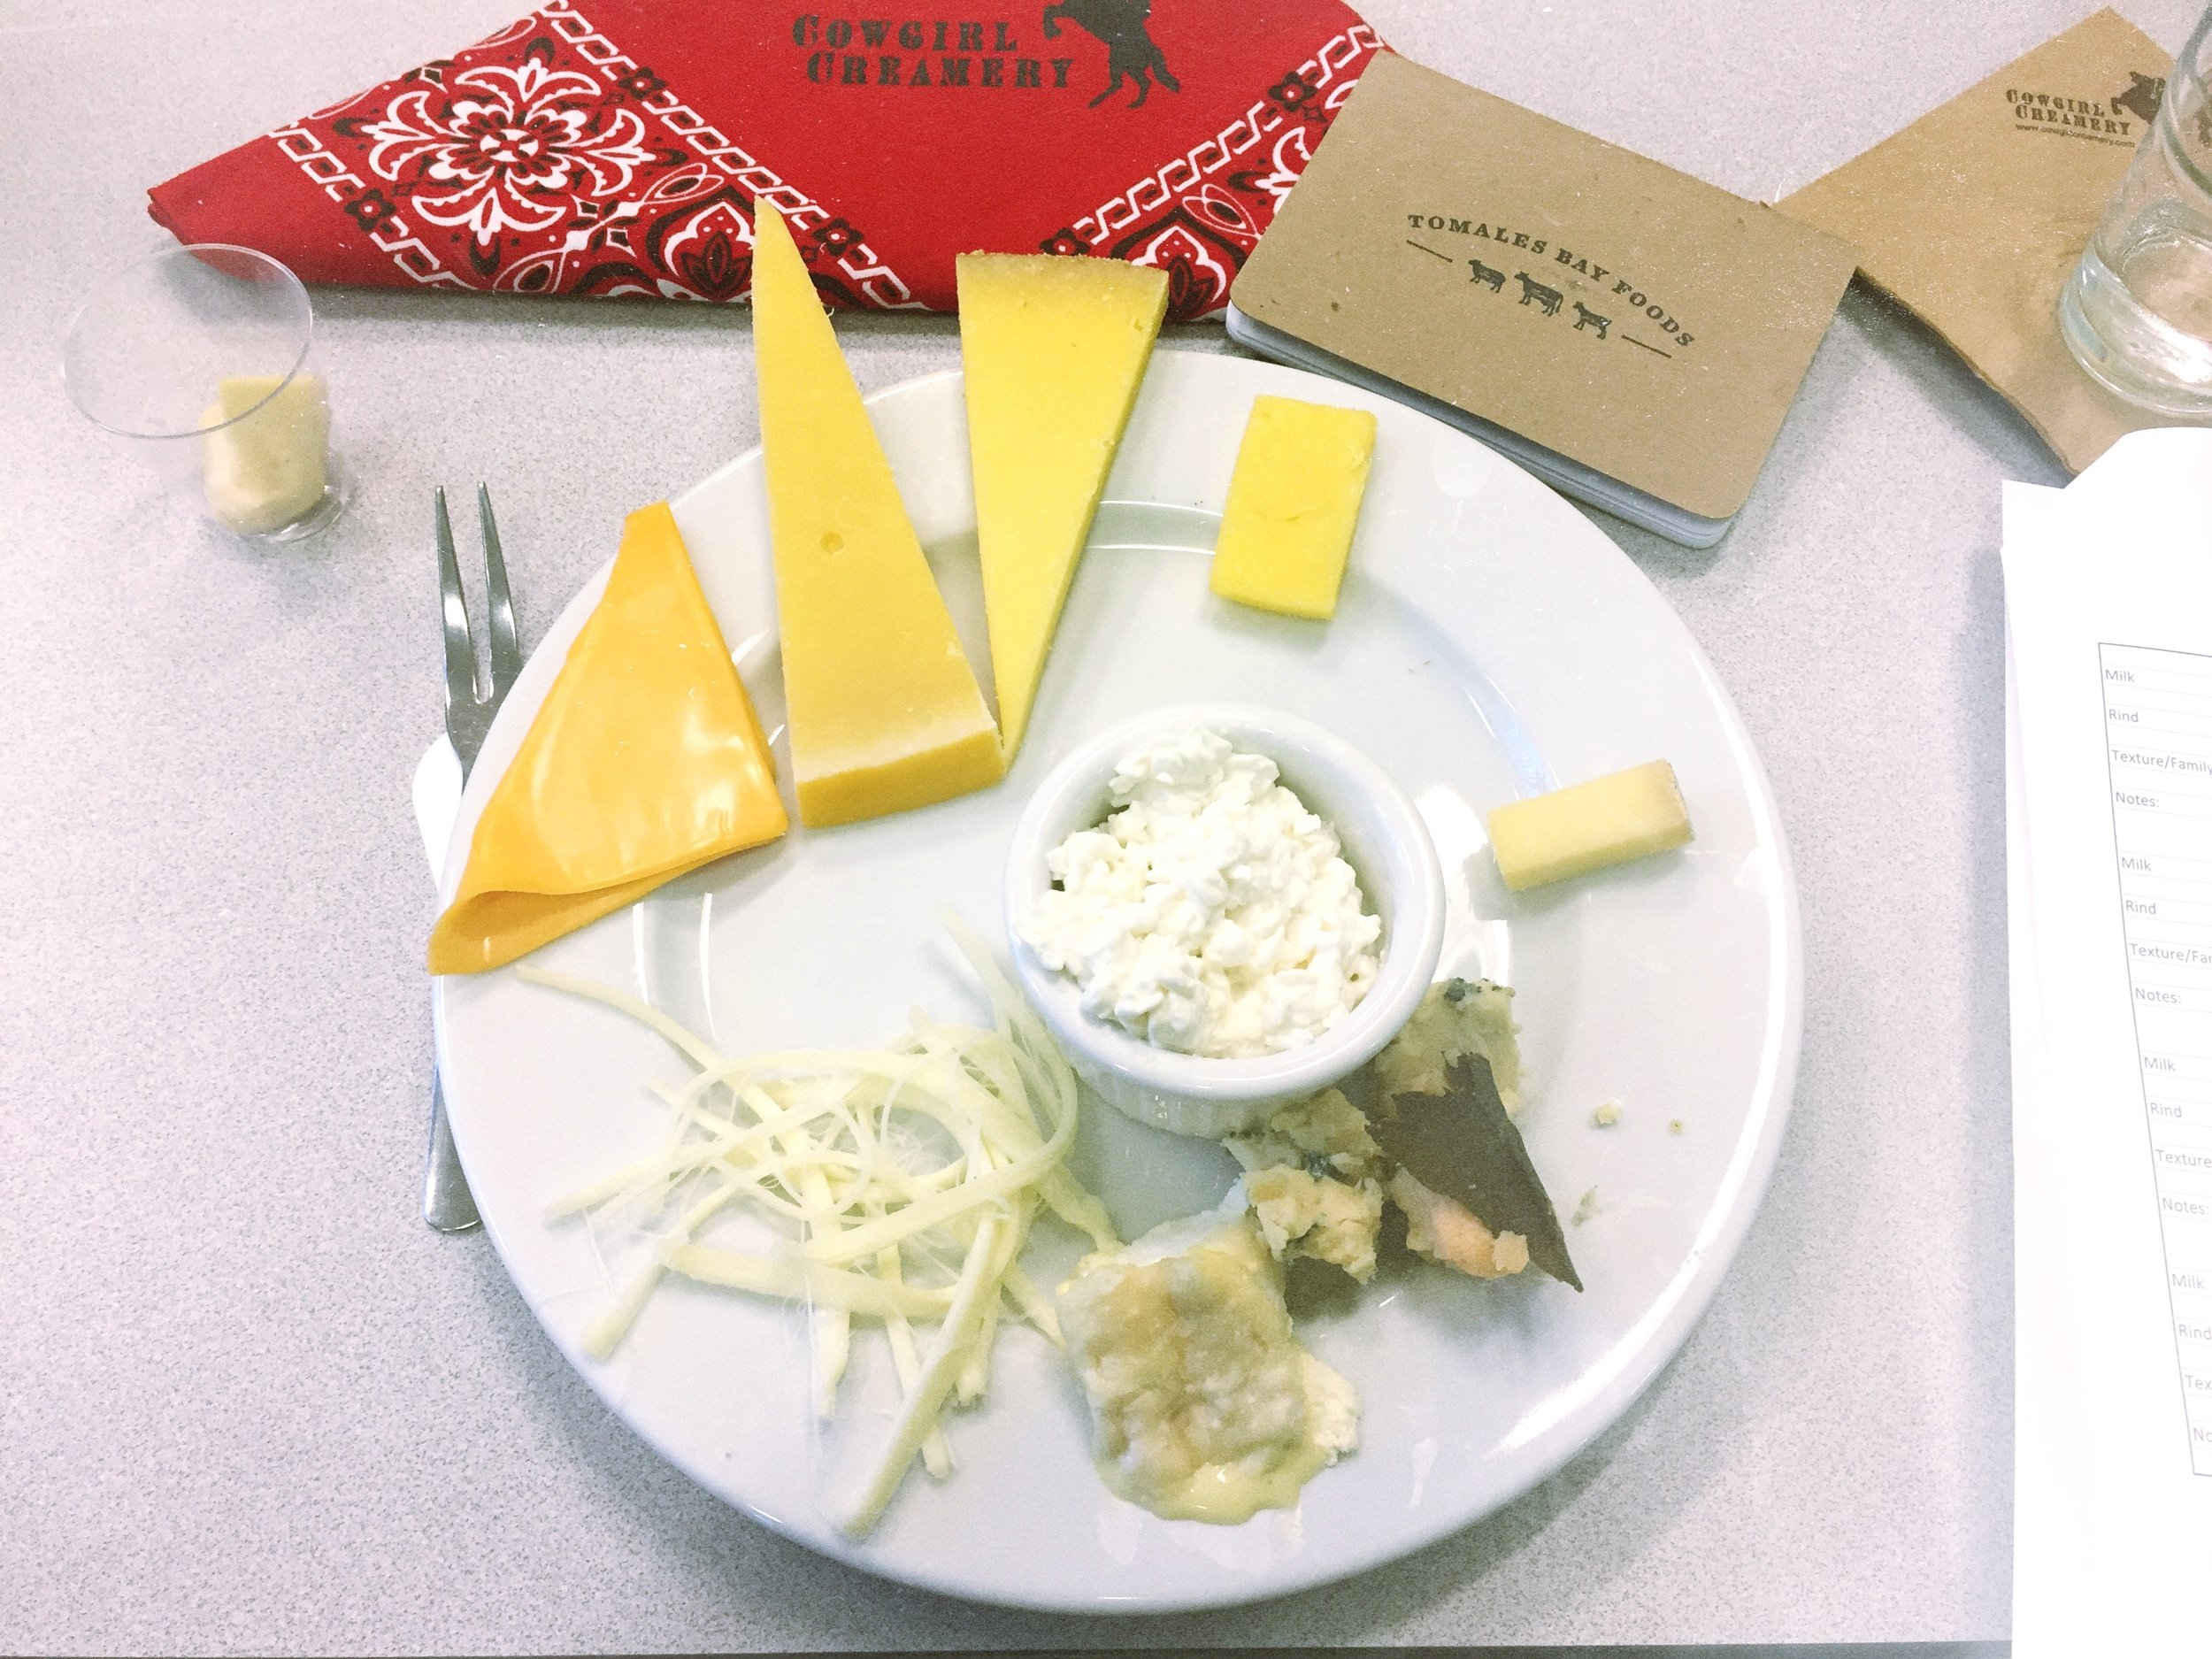 Cheese classification tasting plate. Yes, that is a Kraft single.